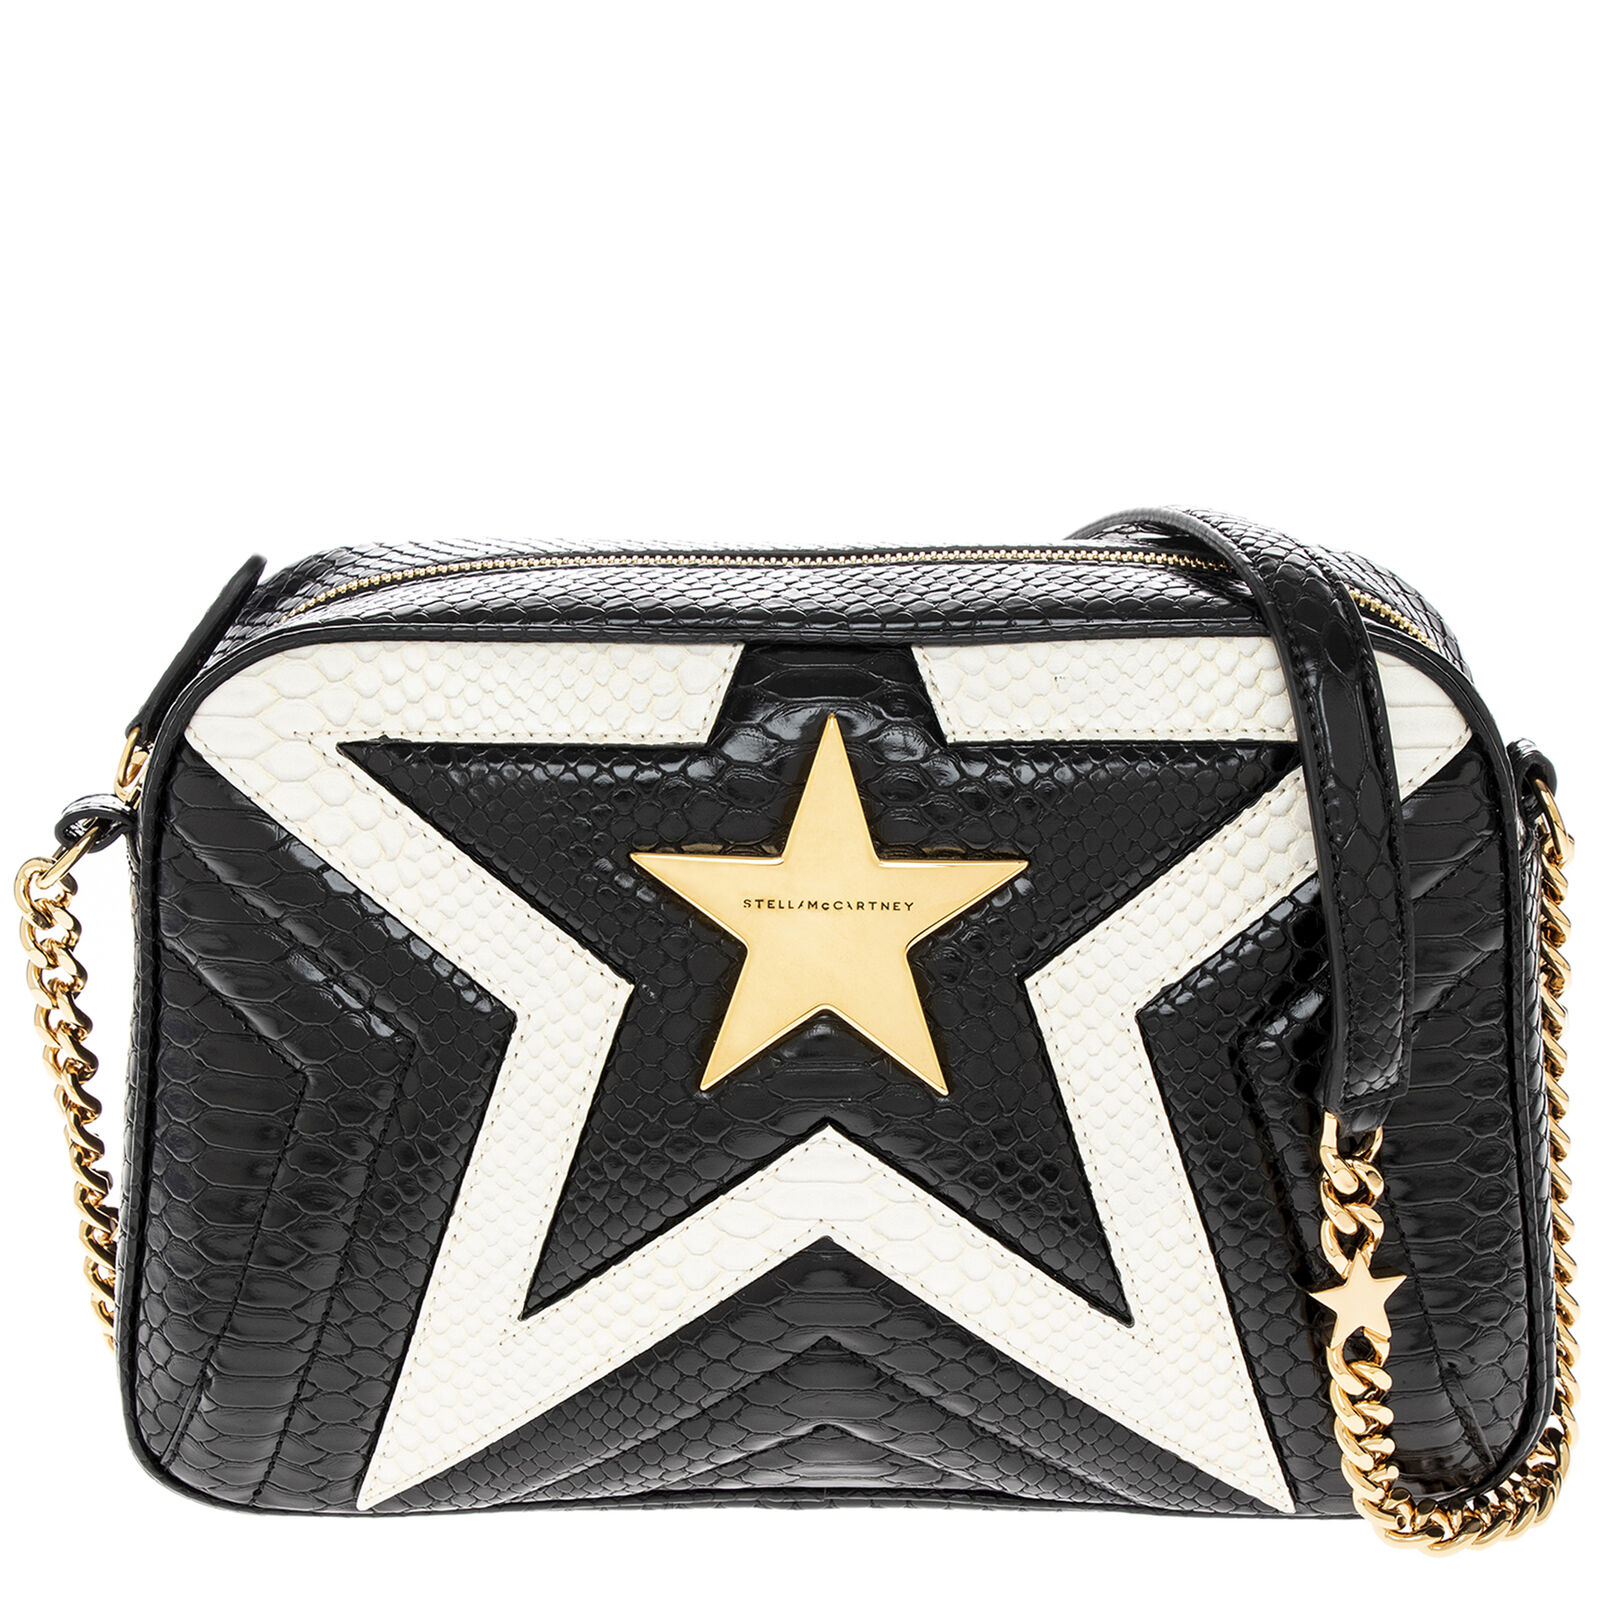 Stella McCartney python-embossed Star Camera Bag